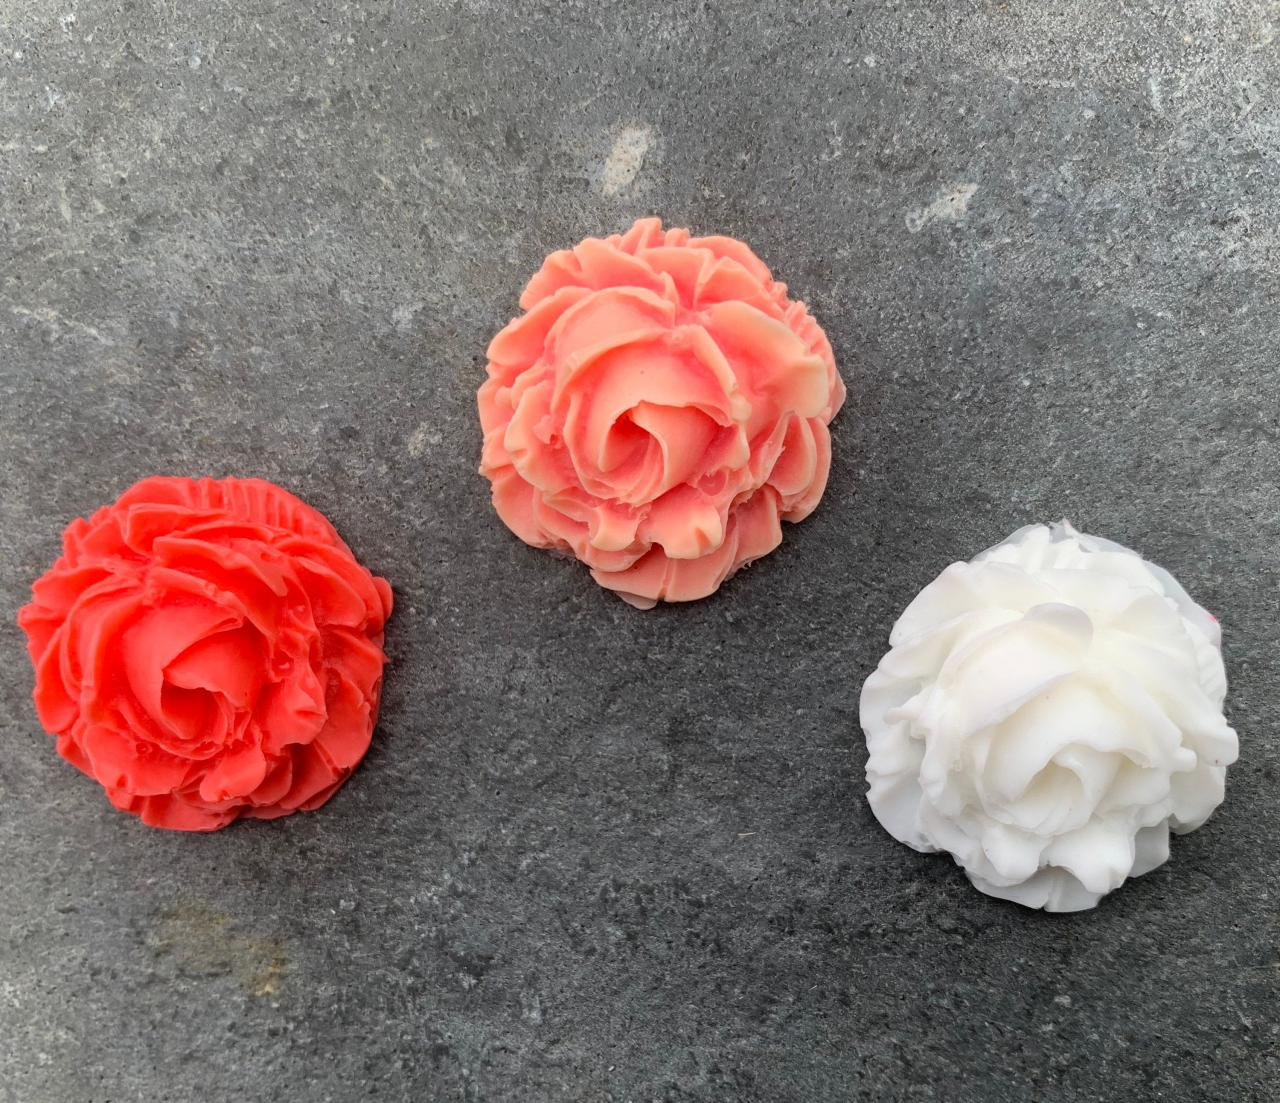 Natural Handmade Soap, Organic Rose Shaped Shower Melts-soap-gifts for her-wedding favors-floral-scented shower melts-rustic-sensitive skincare-spa items-self care product